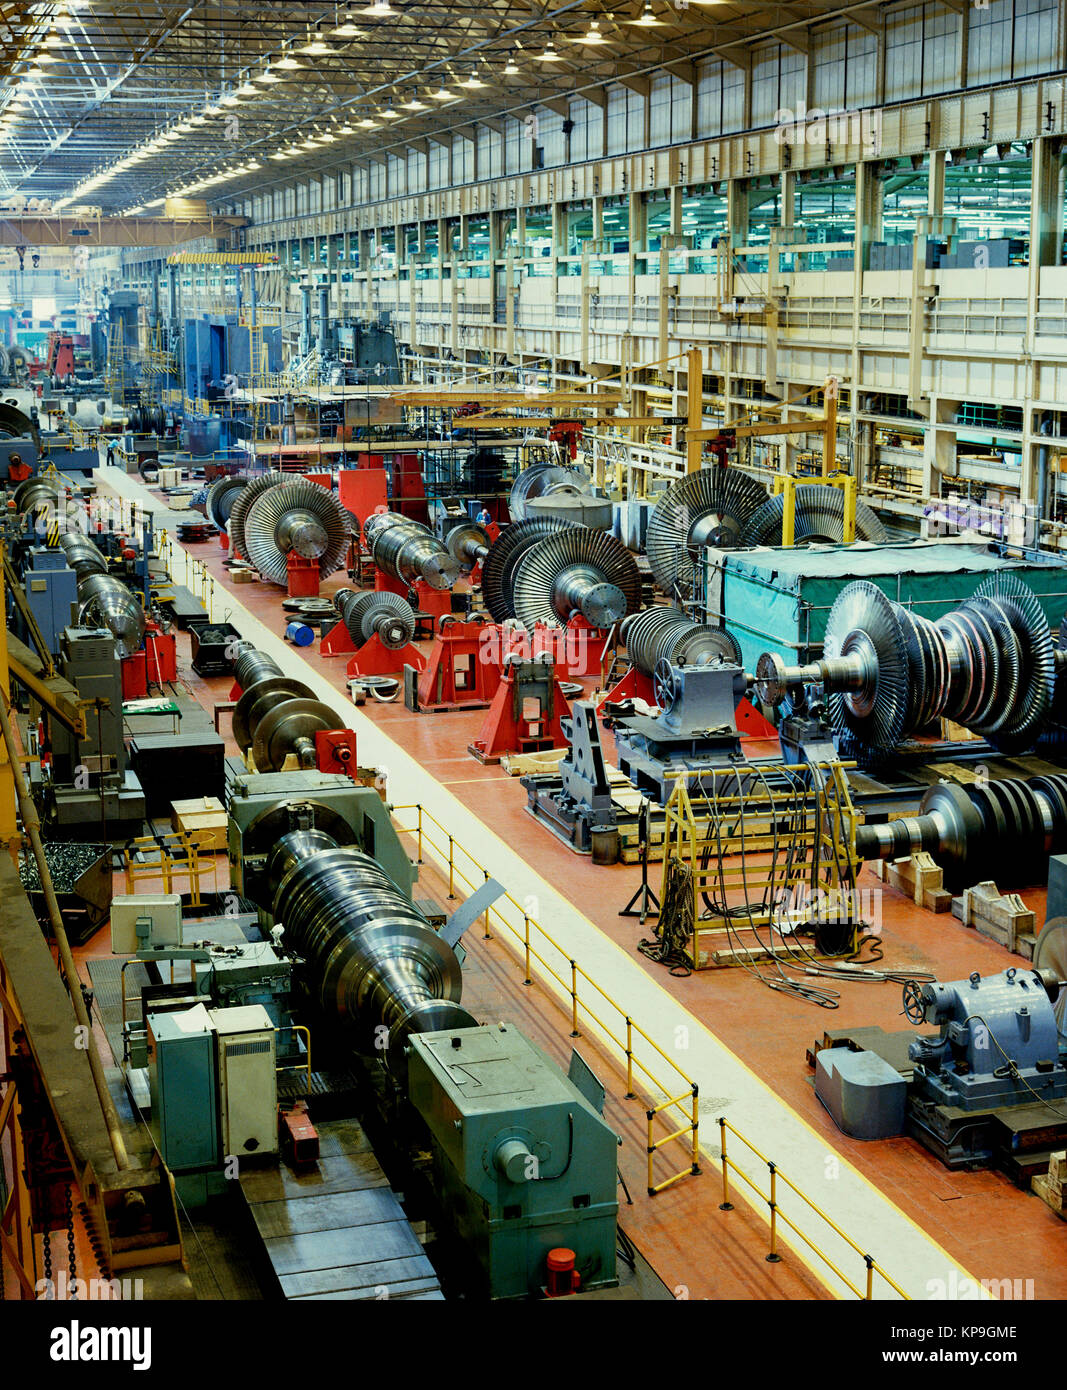 Heavy Industry - the manufacture of steam turbines for the power generation industry. Manchester, United Kingdom. - Stock Image